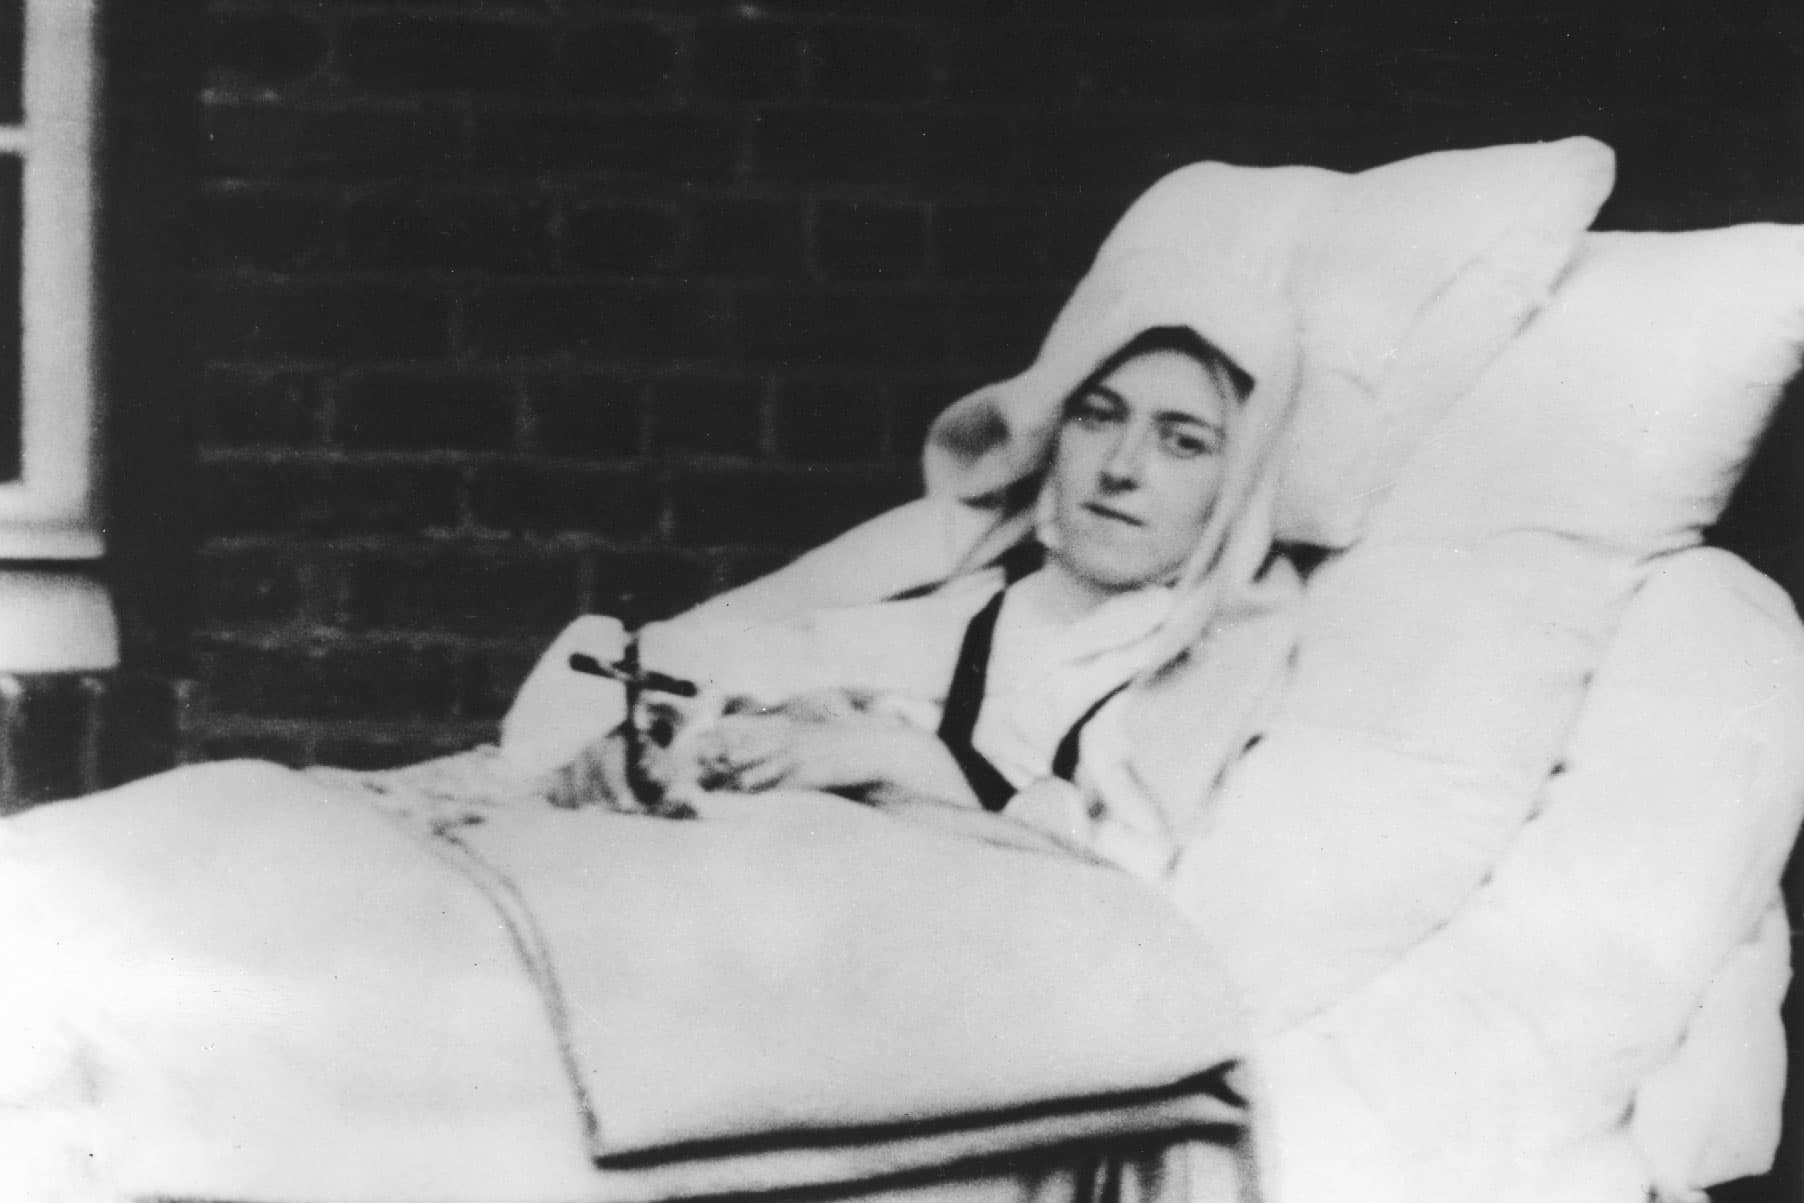 St. Therese on the outdoor porch at Carmel during her illness